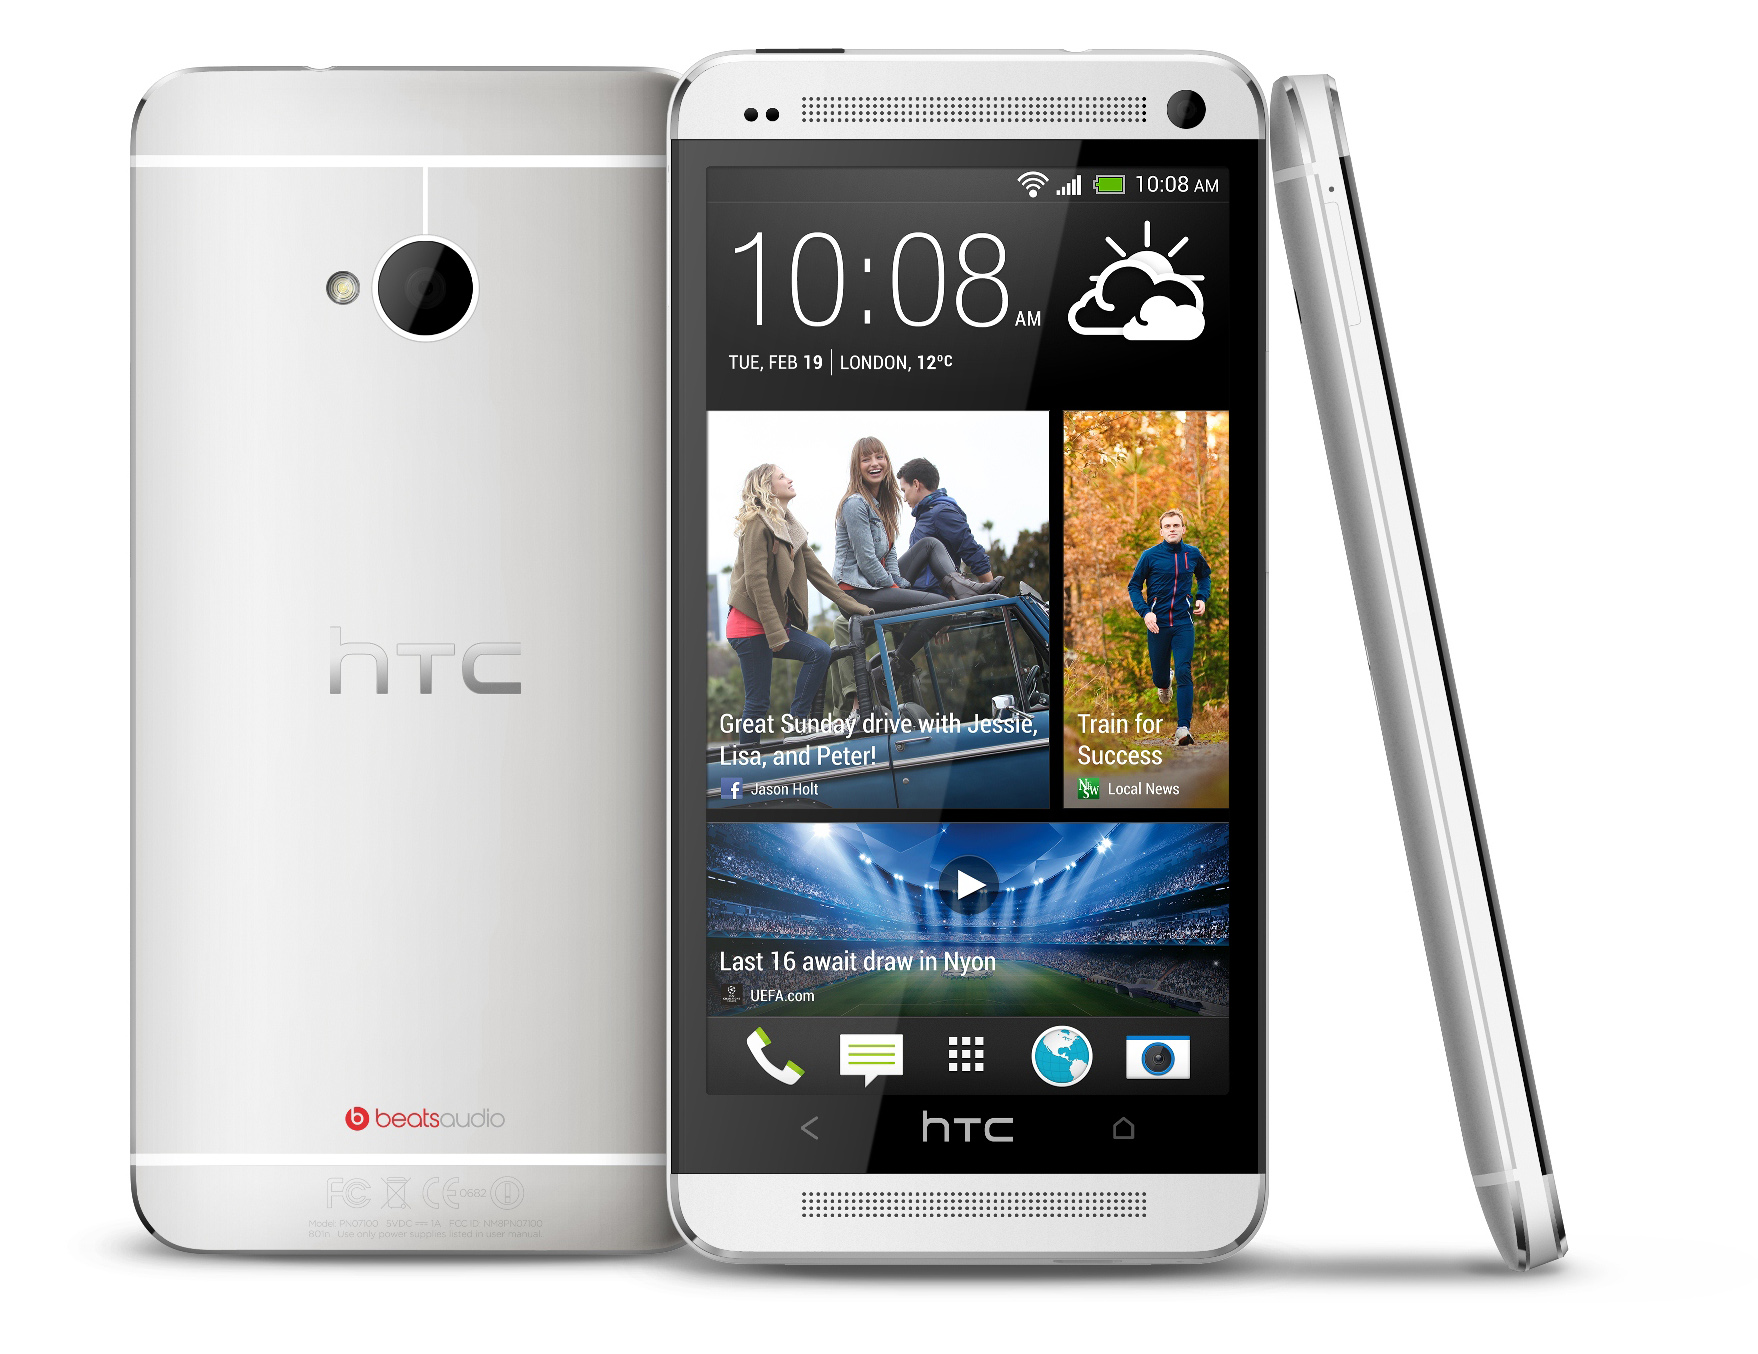 HTC One - Beautiful